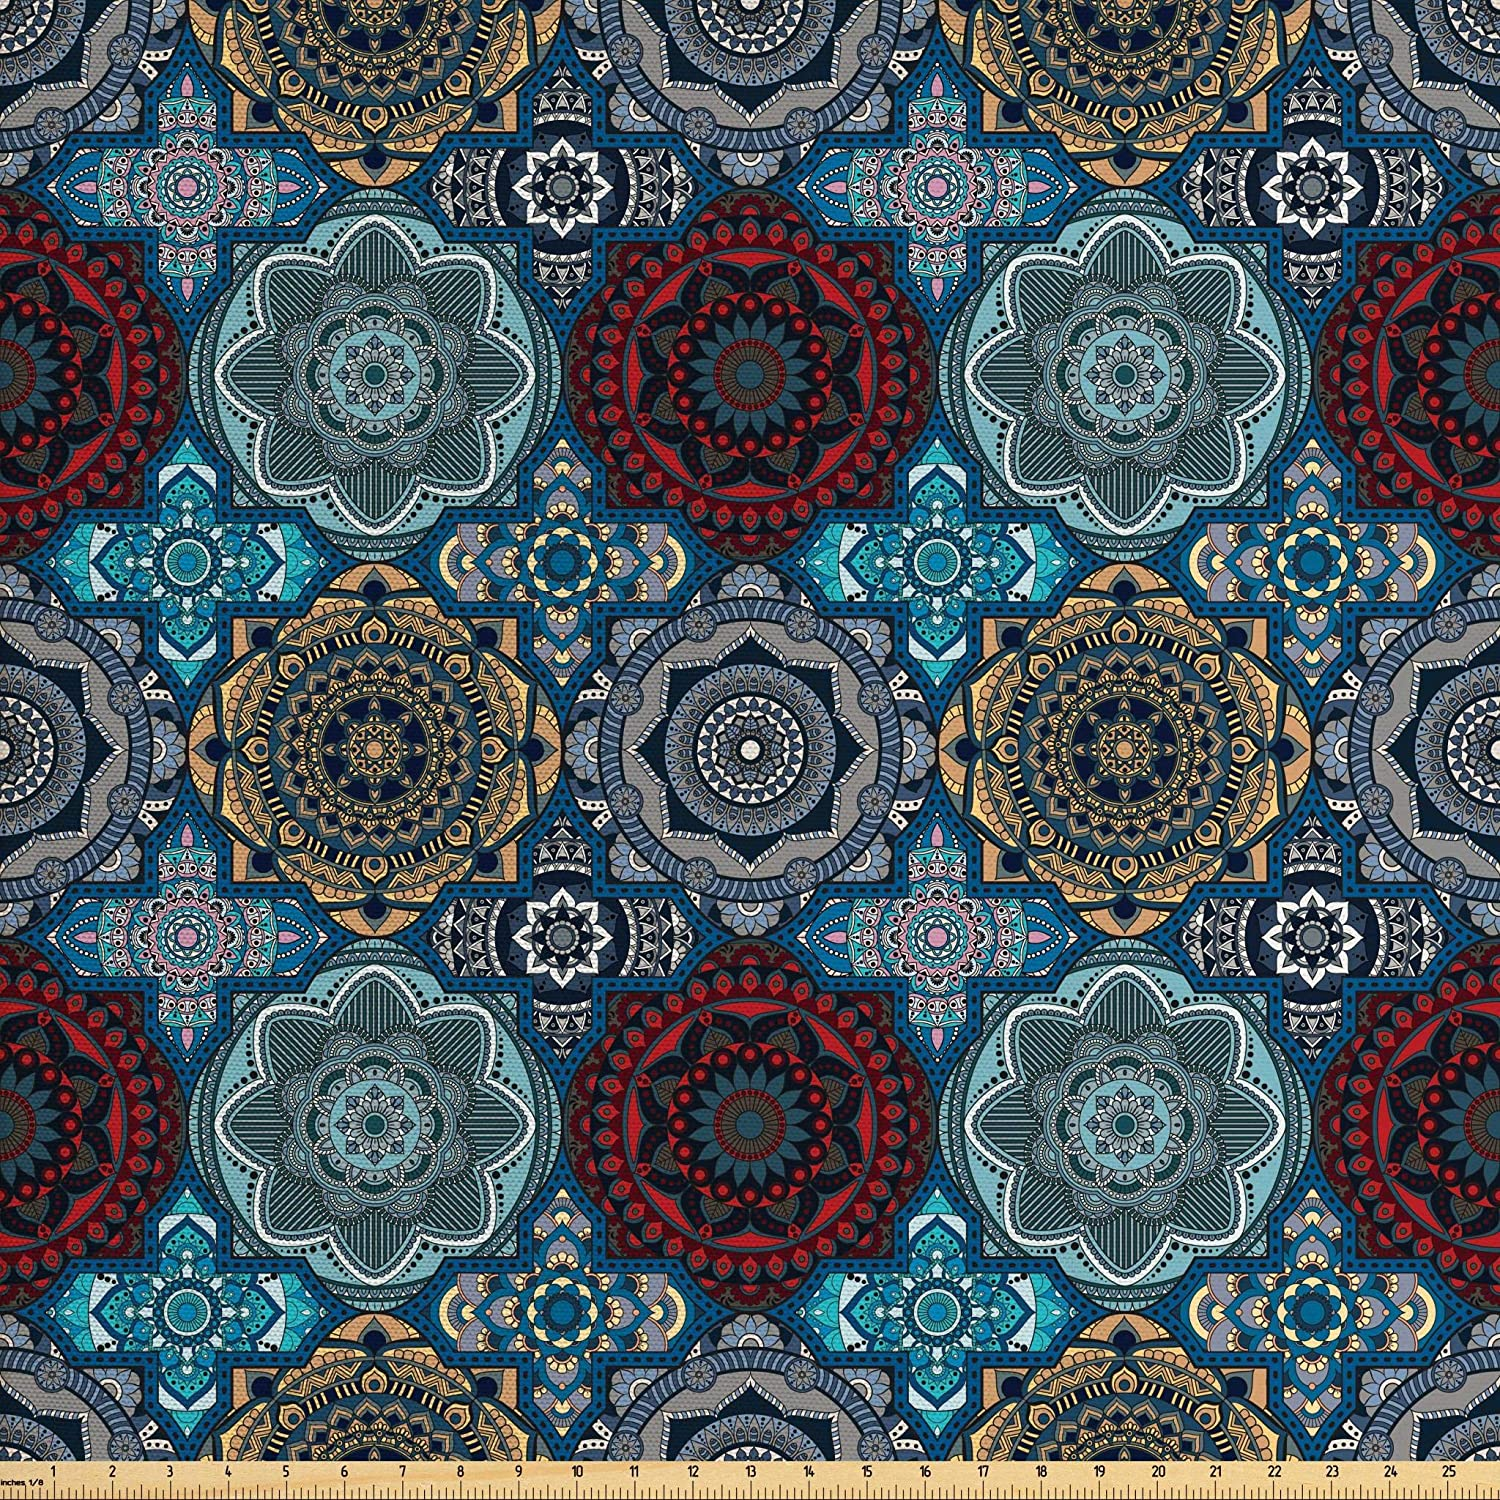 Ambesonne Moroccan Fabric by The Yard, Patchwork Style Vintage Ottoman Inspiration Retro Motifs, Decorative Fabric for Upholstery and Home Accents, 1 Yard, Brown Blue